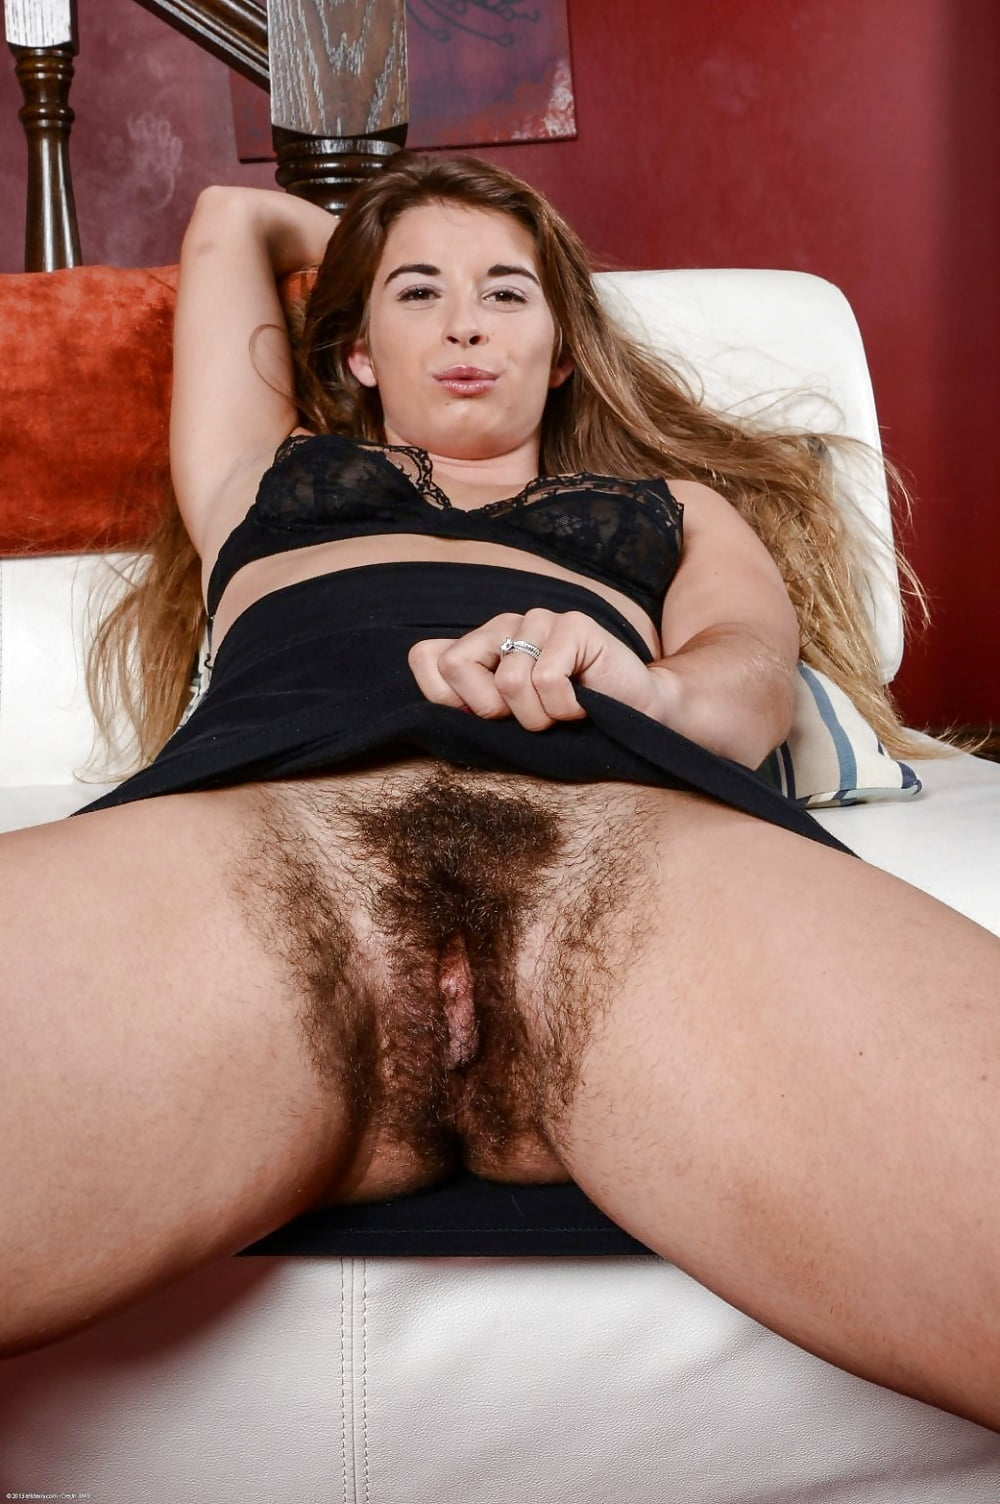 Hairy woman pussy image